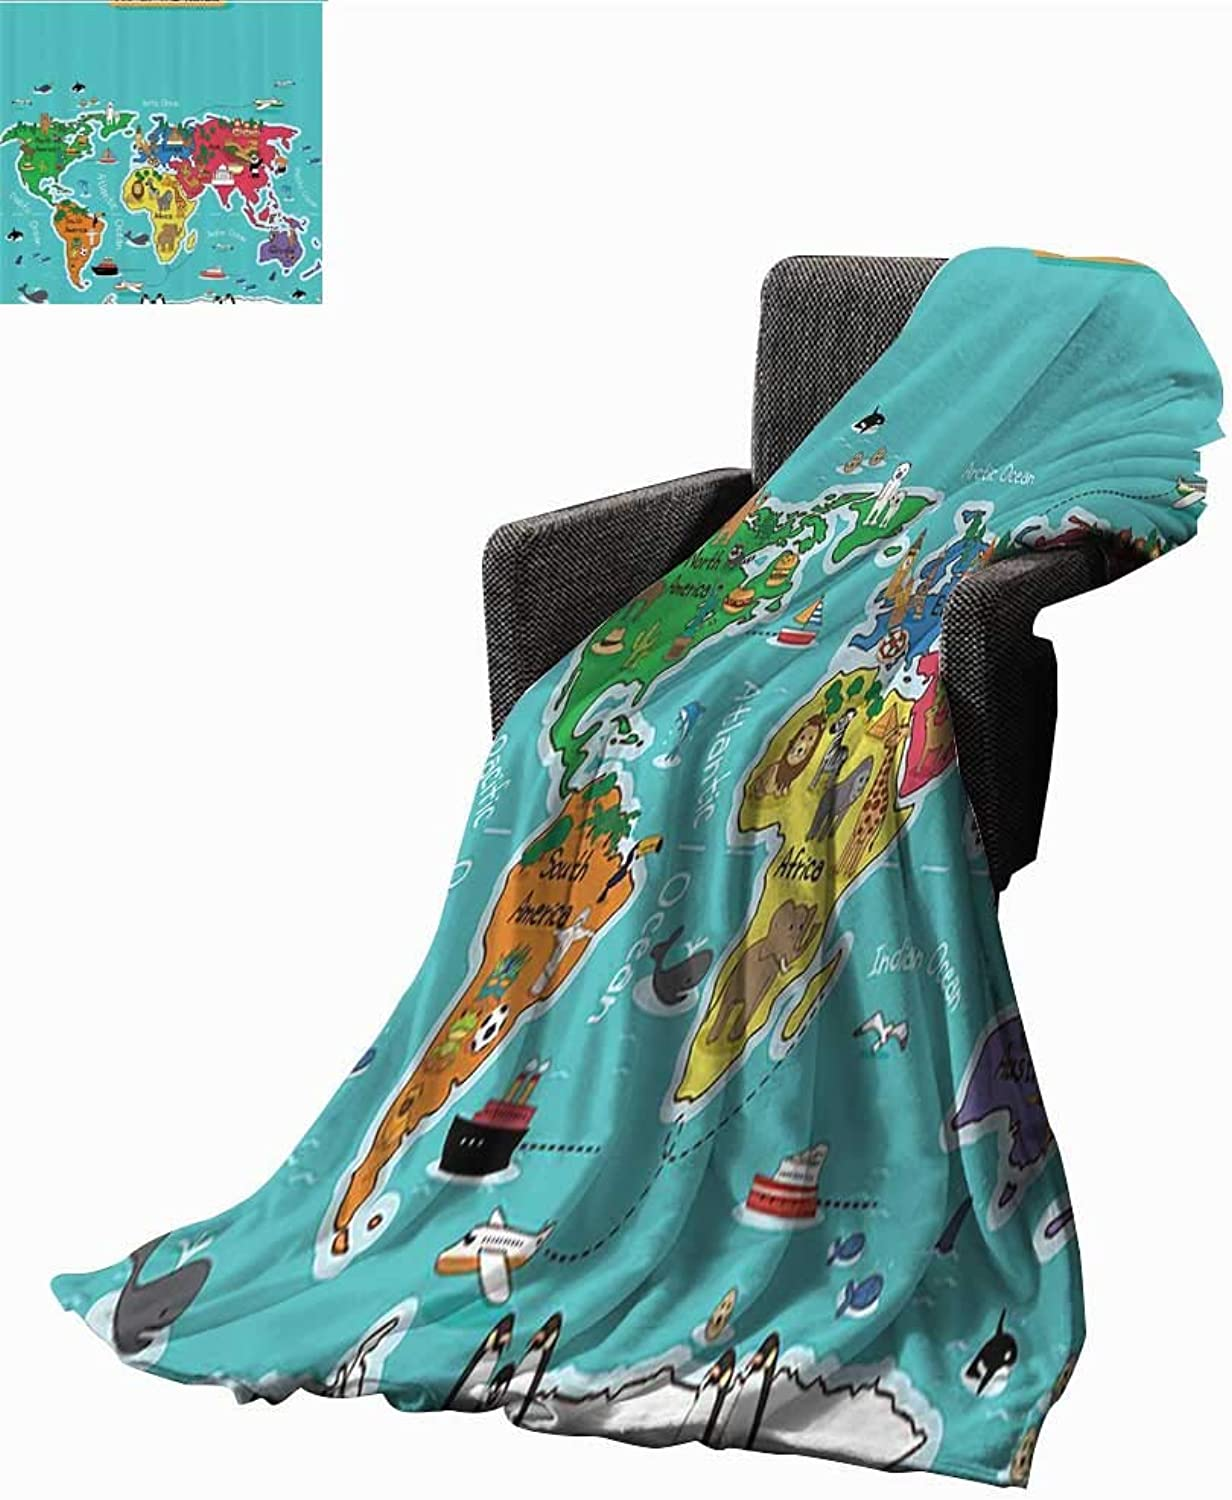 colorful Educational Kids Maps Decor Collection The Original Vellux Blanket America Africa Asia Australia Pacific Indian Atlantic Ocean Image Home, Couch, Outdoor, Travel Use 54  Wx72 L Yellow bluee